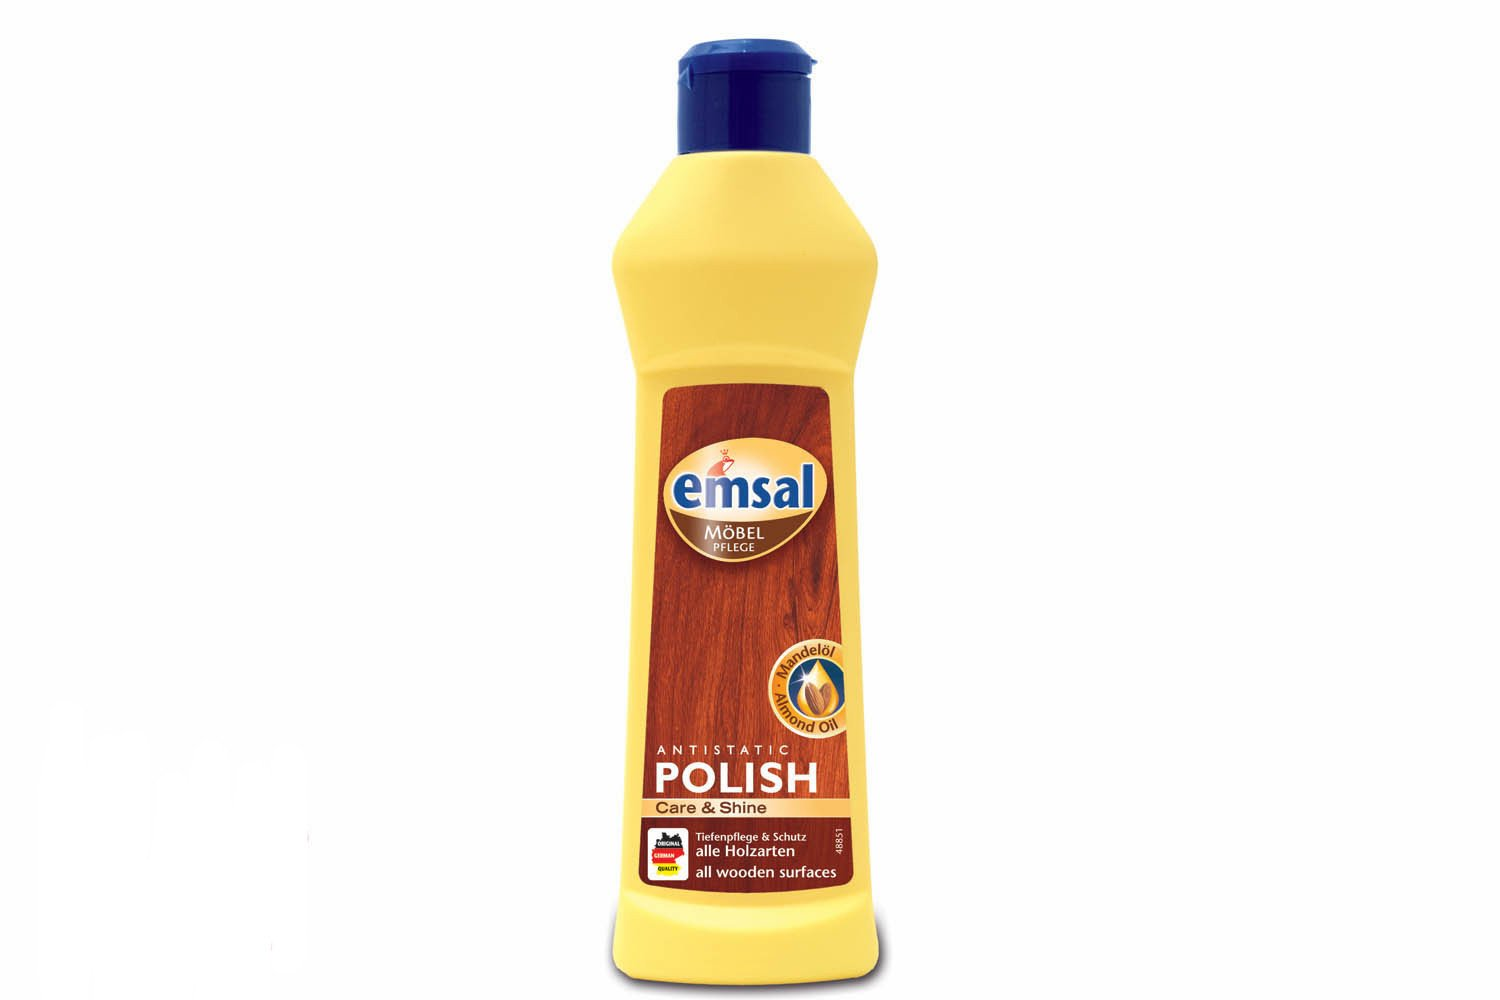 Polish Care & Shine Polish Care & Shine